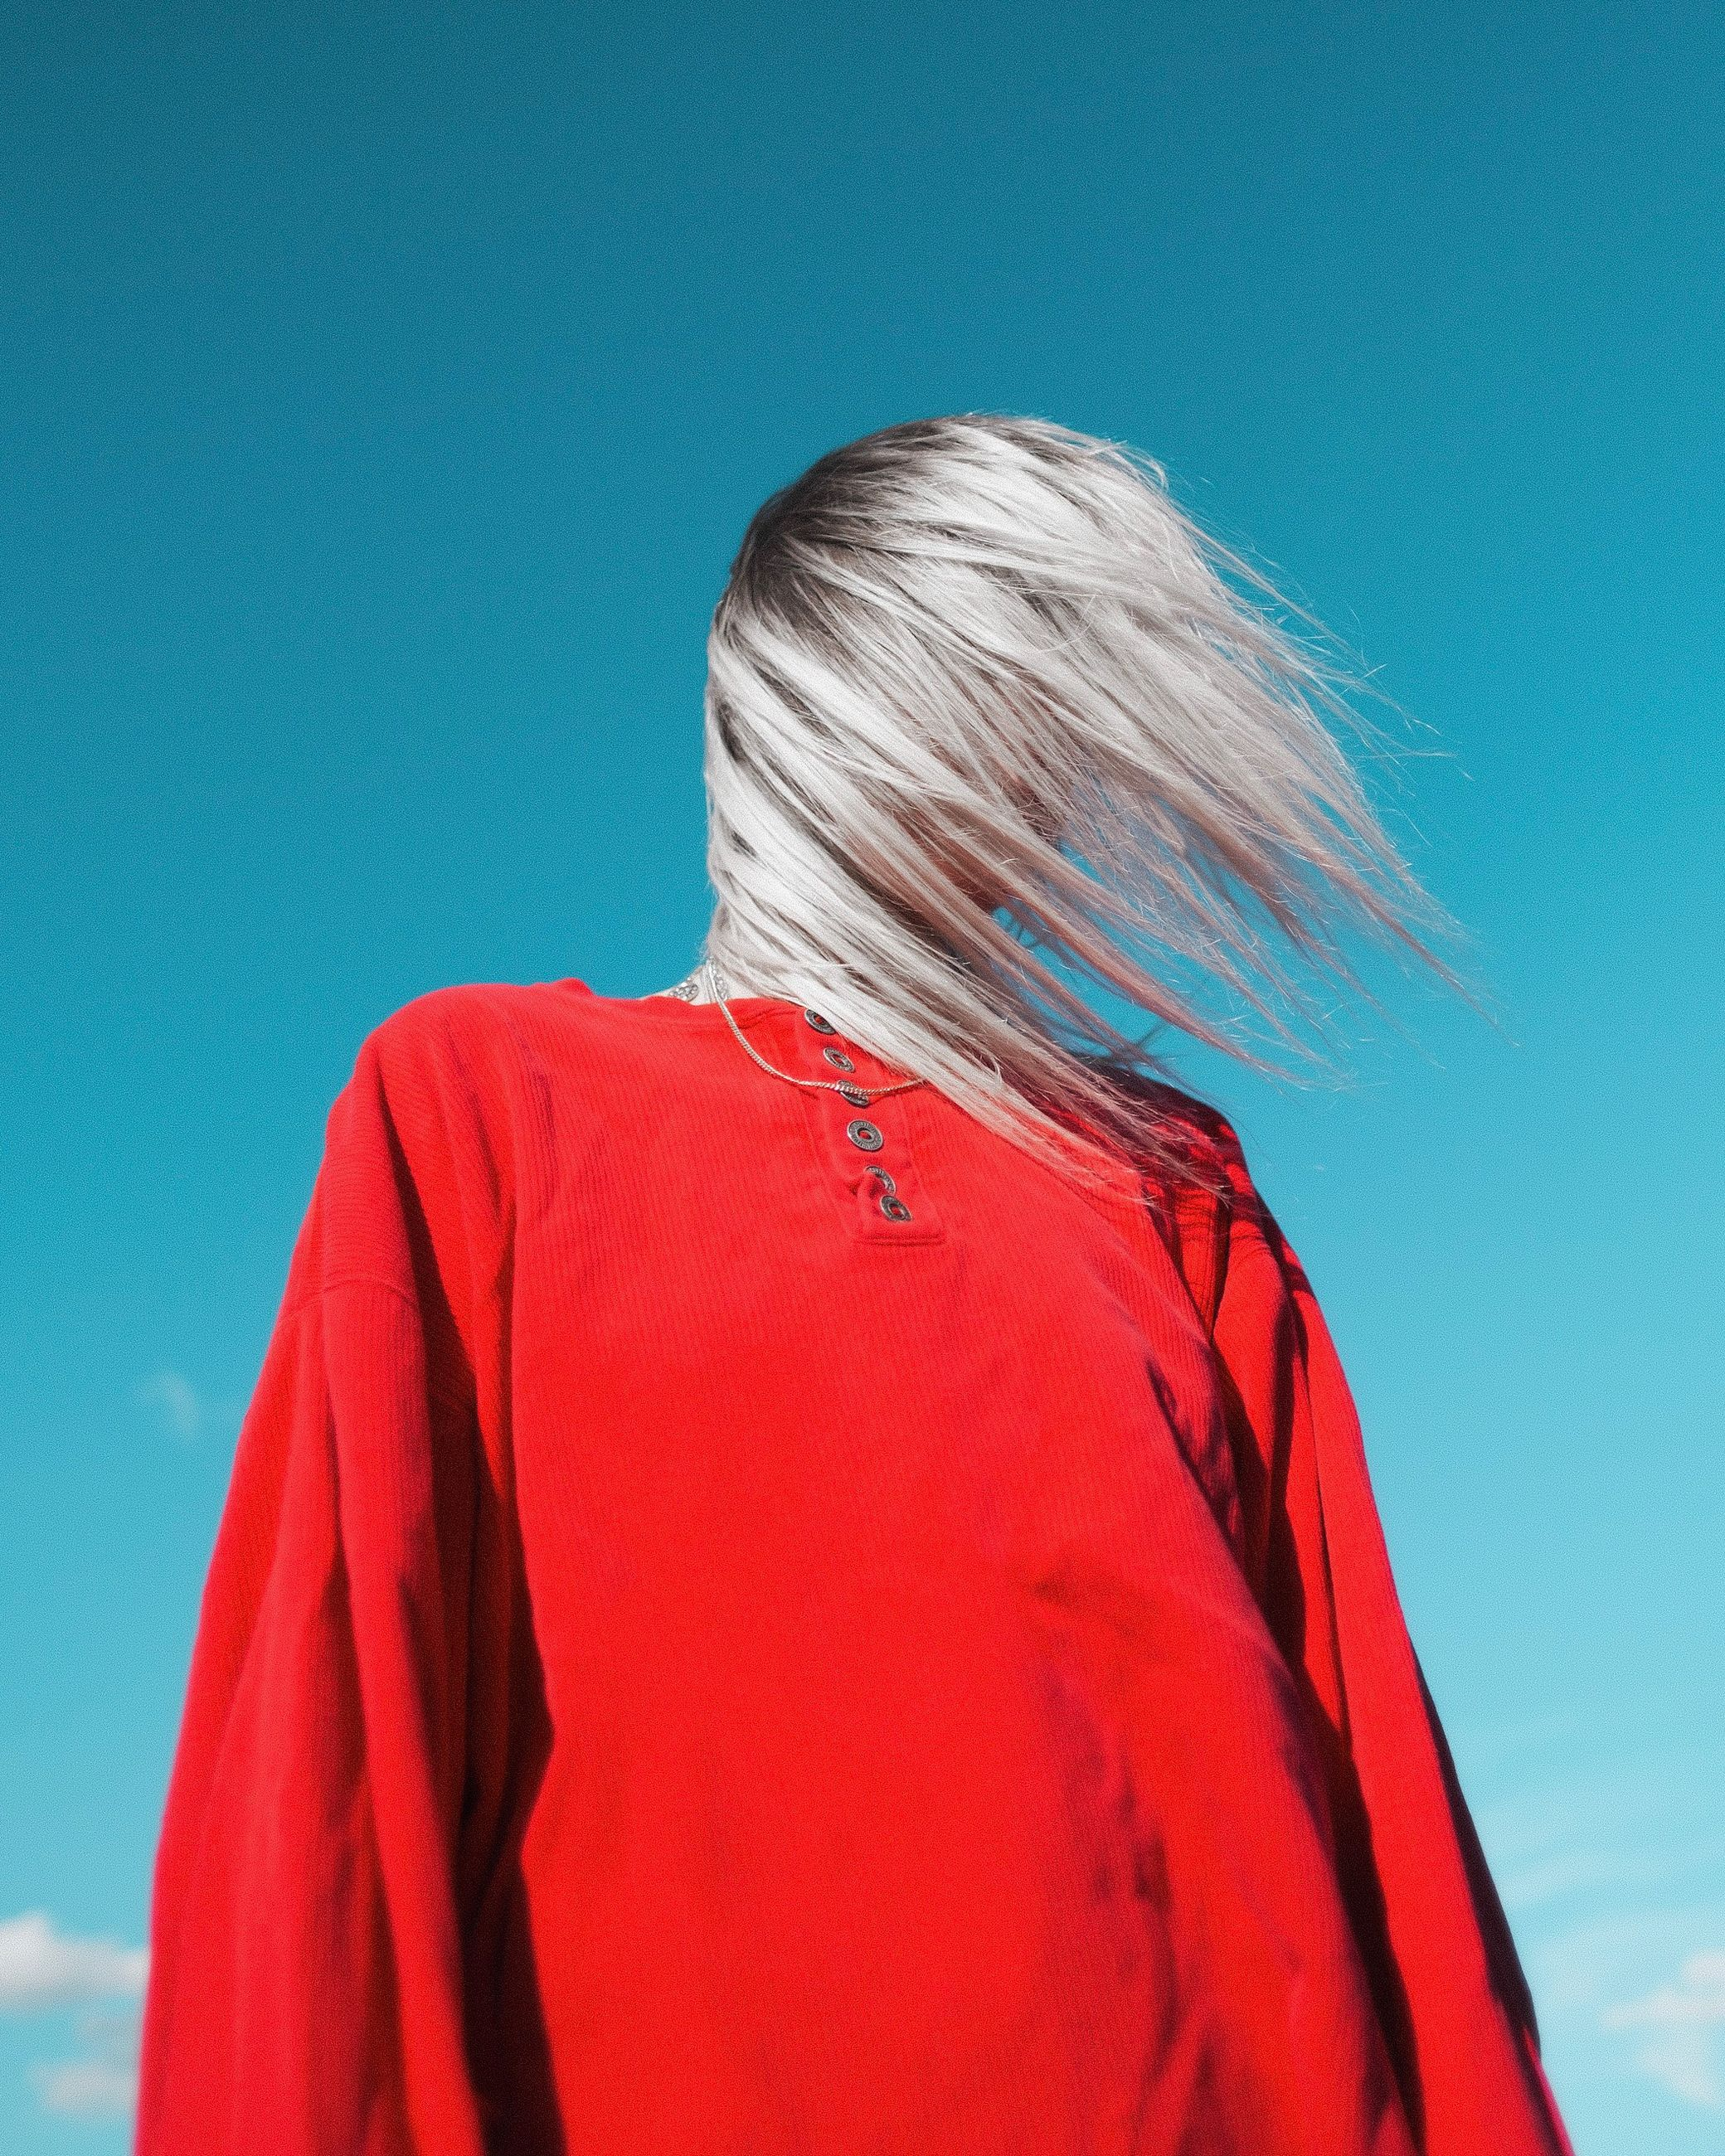 hair, red, one person, hairstyle, blond hair, rear view, sky, long hair, blue, women, adult, lifestyles, leisure activity, motion, real people, clear sky, casual clothing, waist up, nature, obscured face, human hair